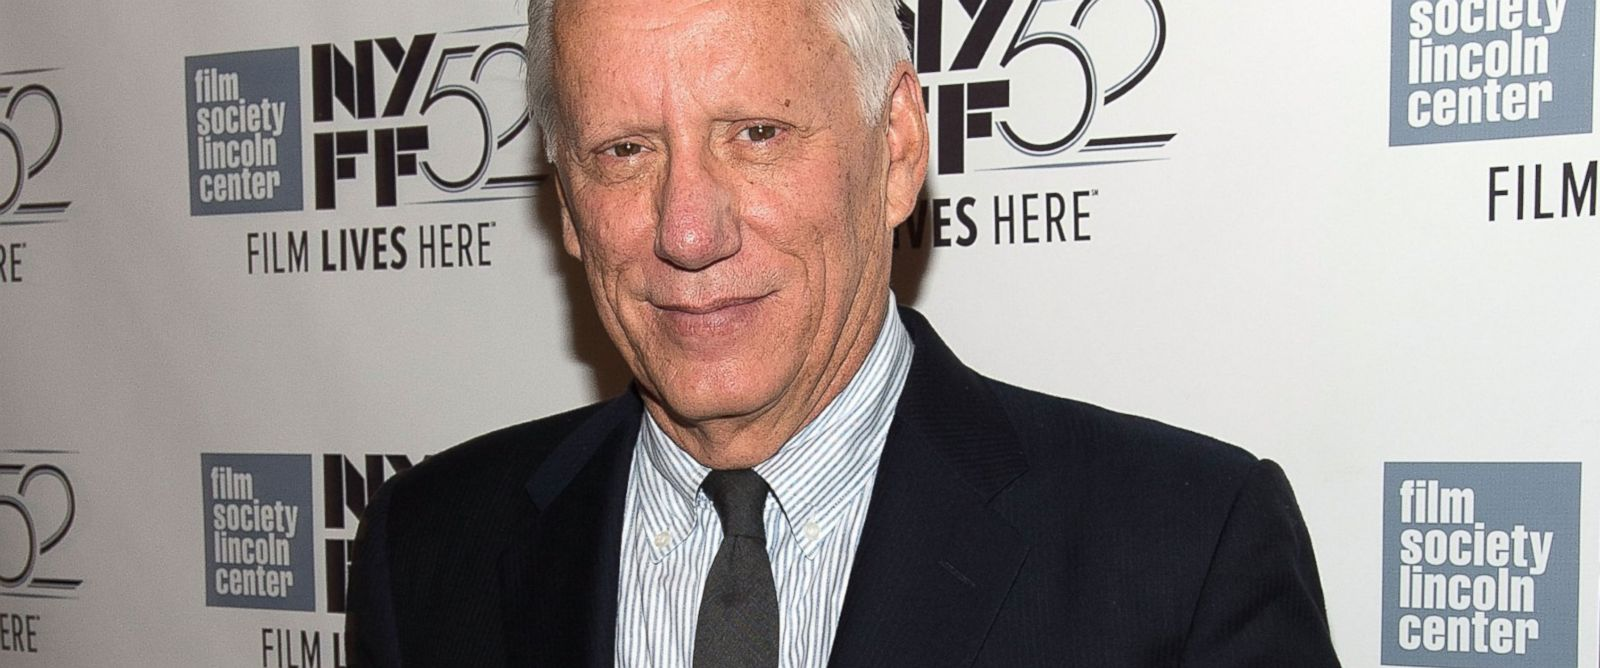 PHOTO: James Woods attends the 52nd New York Film Festival at Walter Reade Theater in this Sept. 27, 2014 file photo in New York.